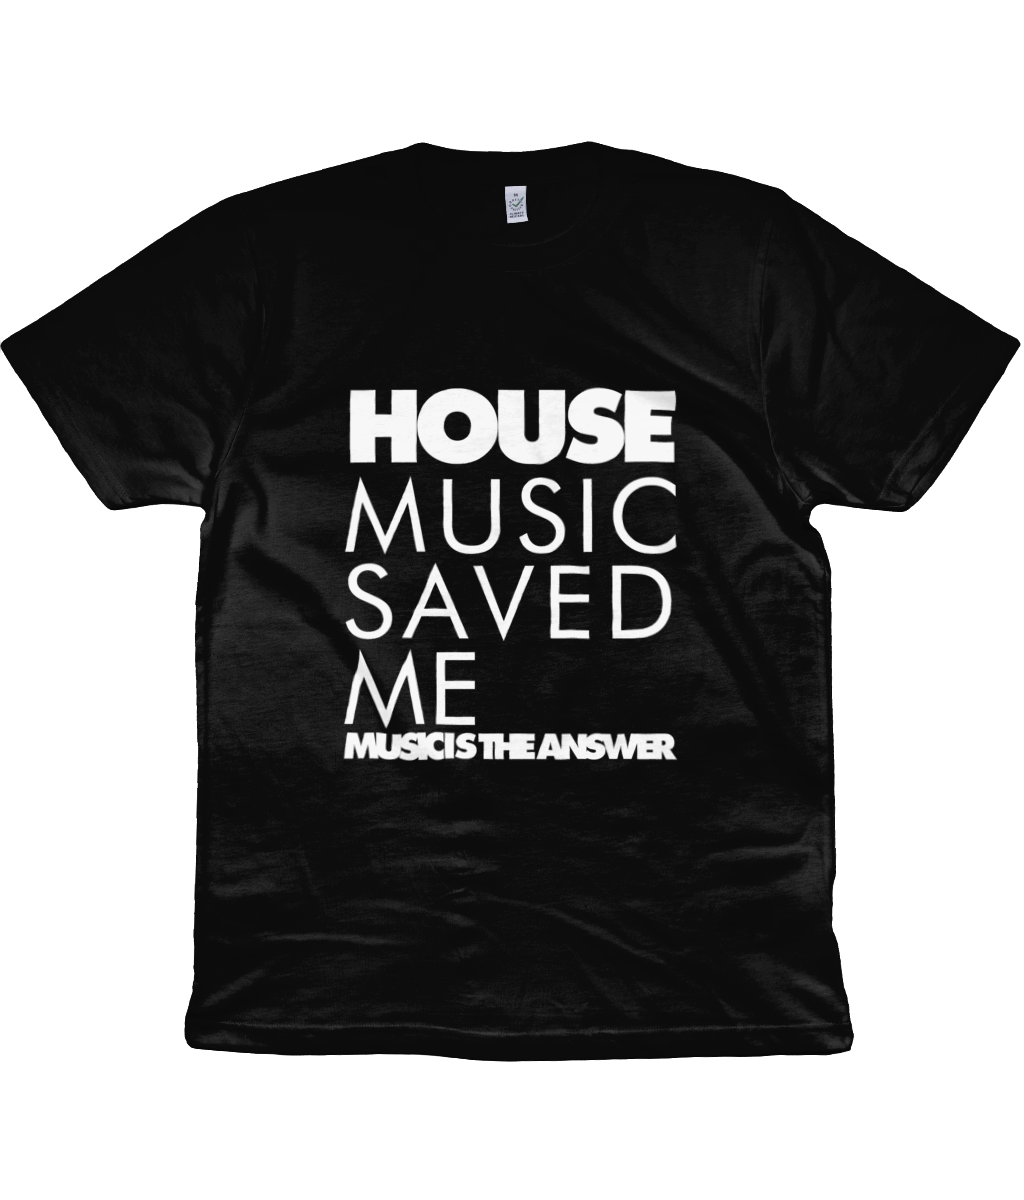 T-Shirt Saved